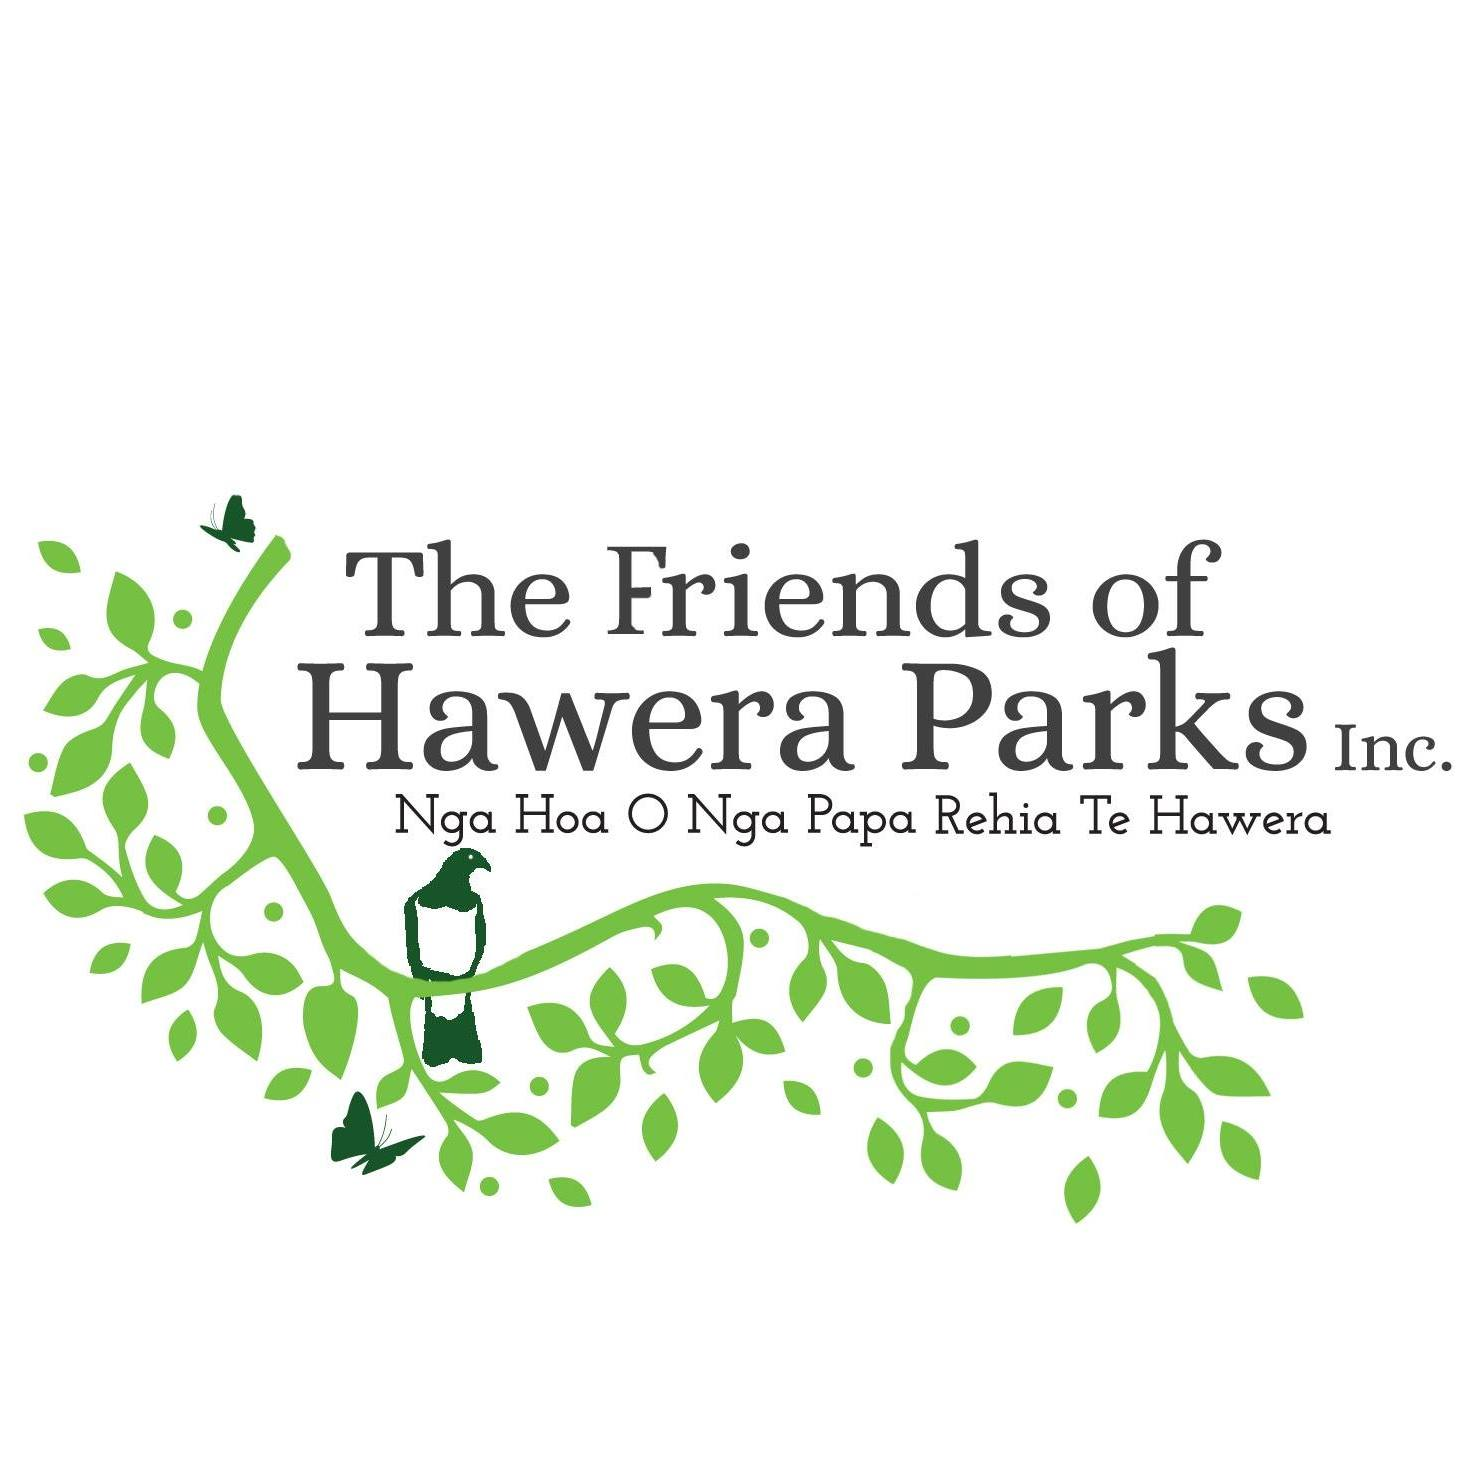 The Friends of Hawera Parks @The Friends of Hawera Parks Inc.